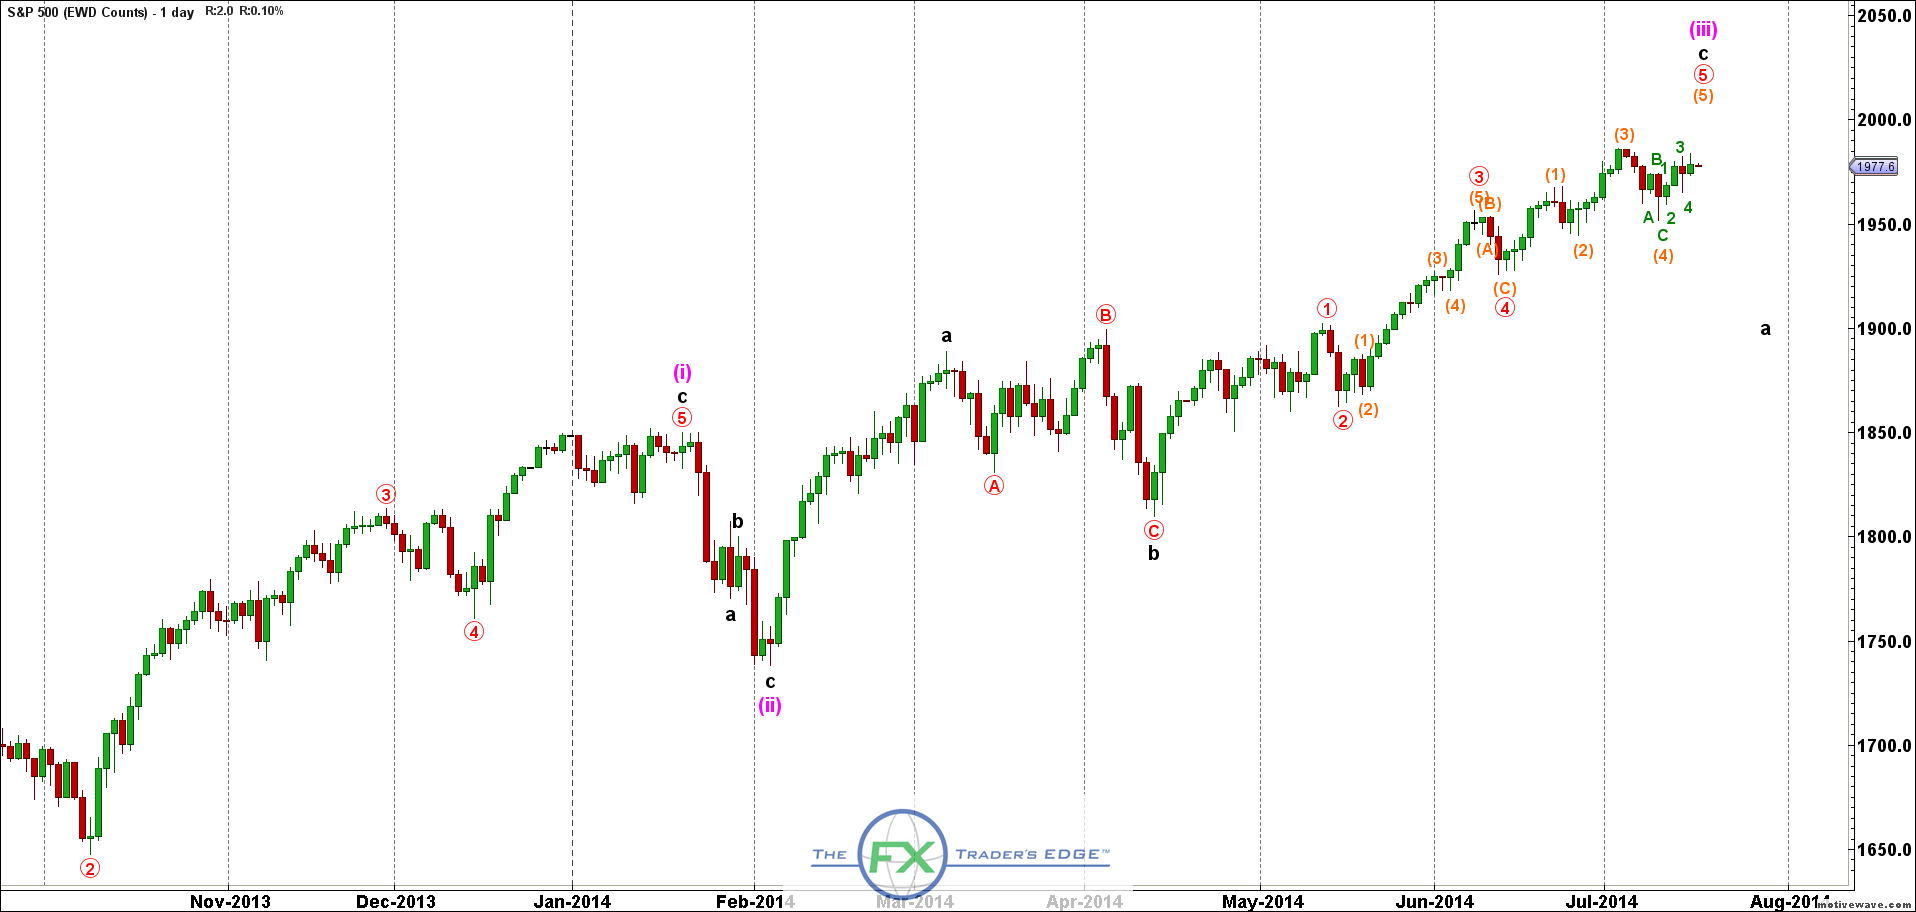 SPX500-EWD-Counts-Jul-16-2012-PM-1-day